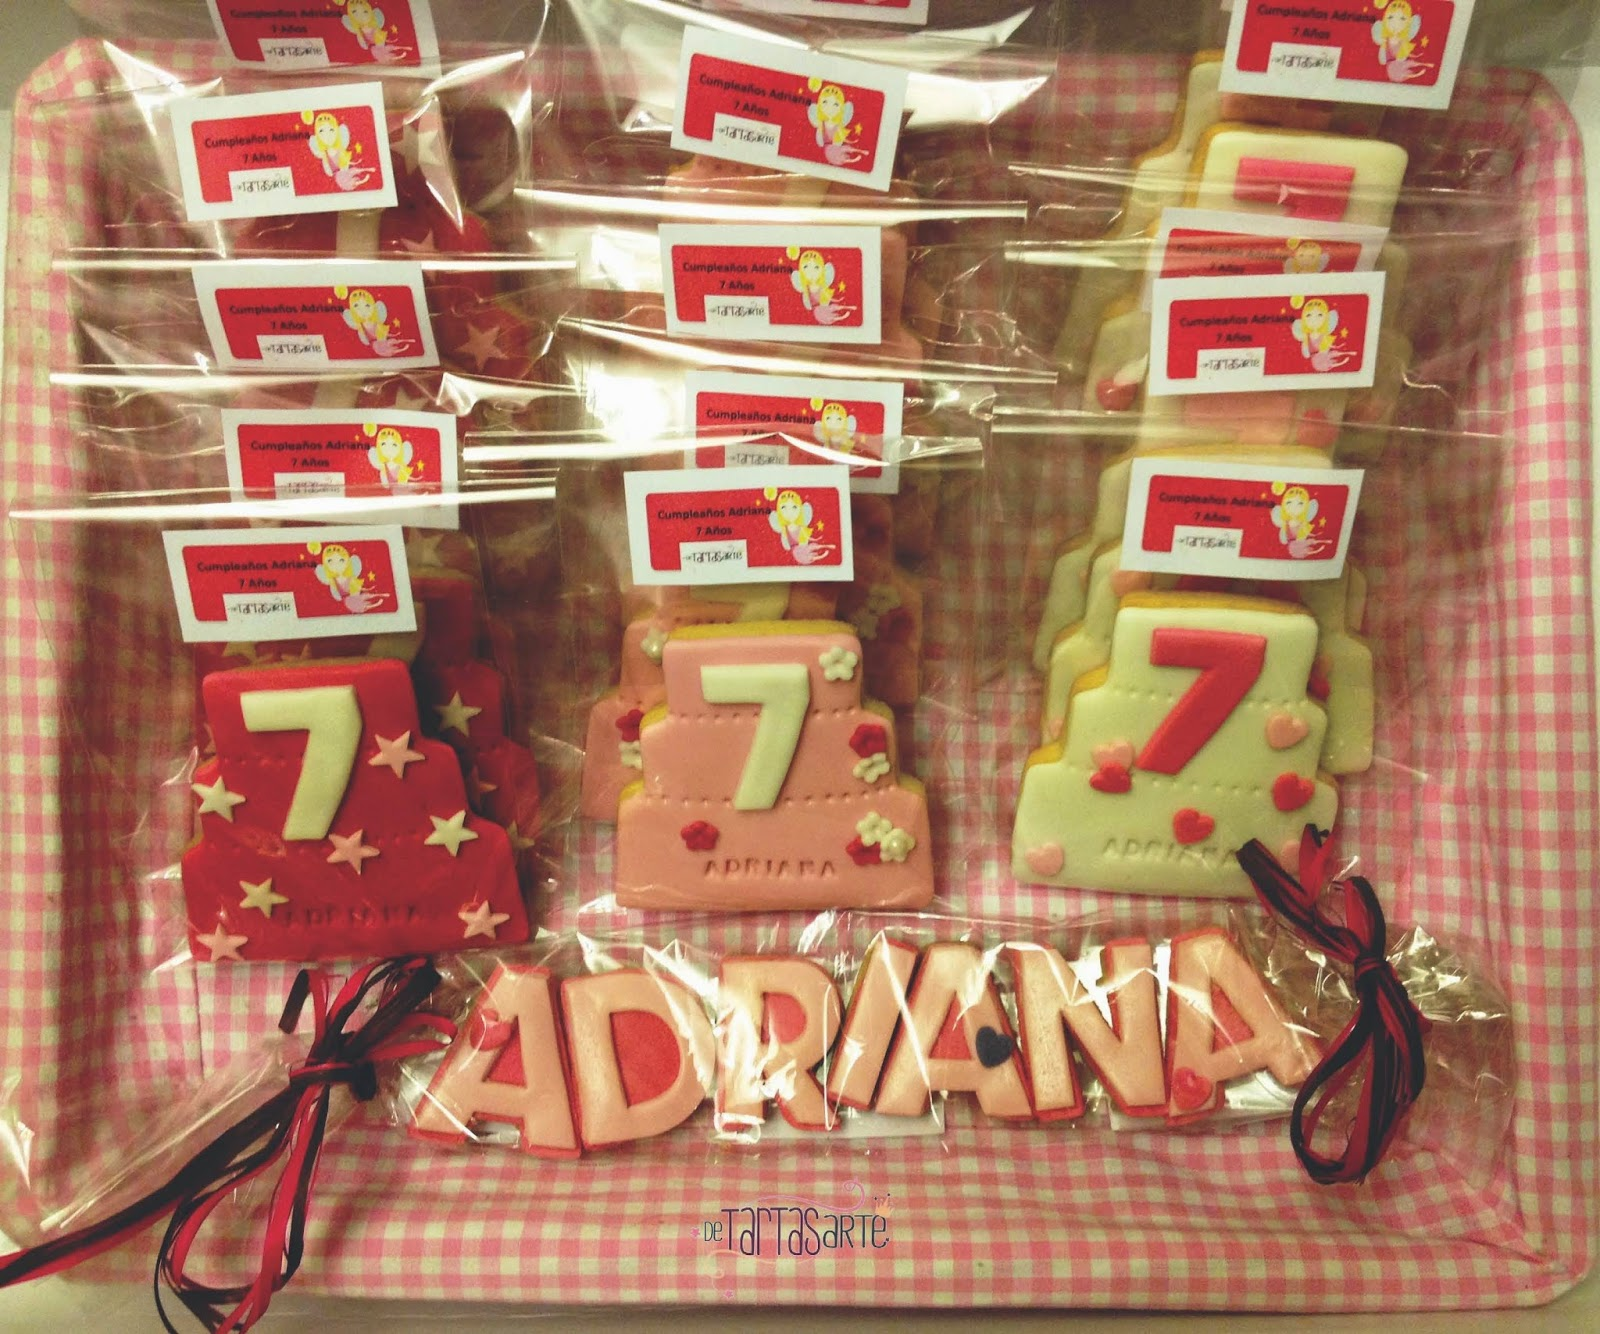 galletas decoradas; galletas decoradas fondant; galletas tarta; galletas decorada tarta; galletas cumpleaños